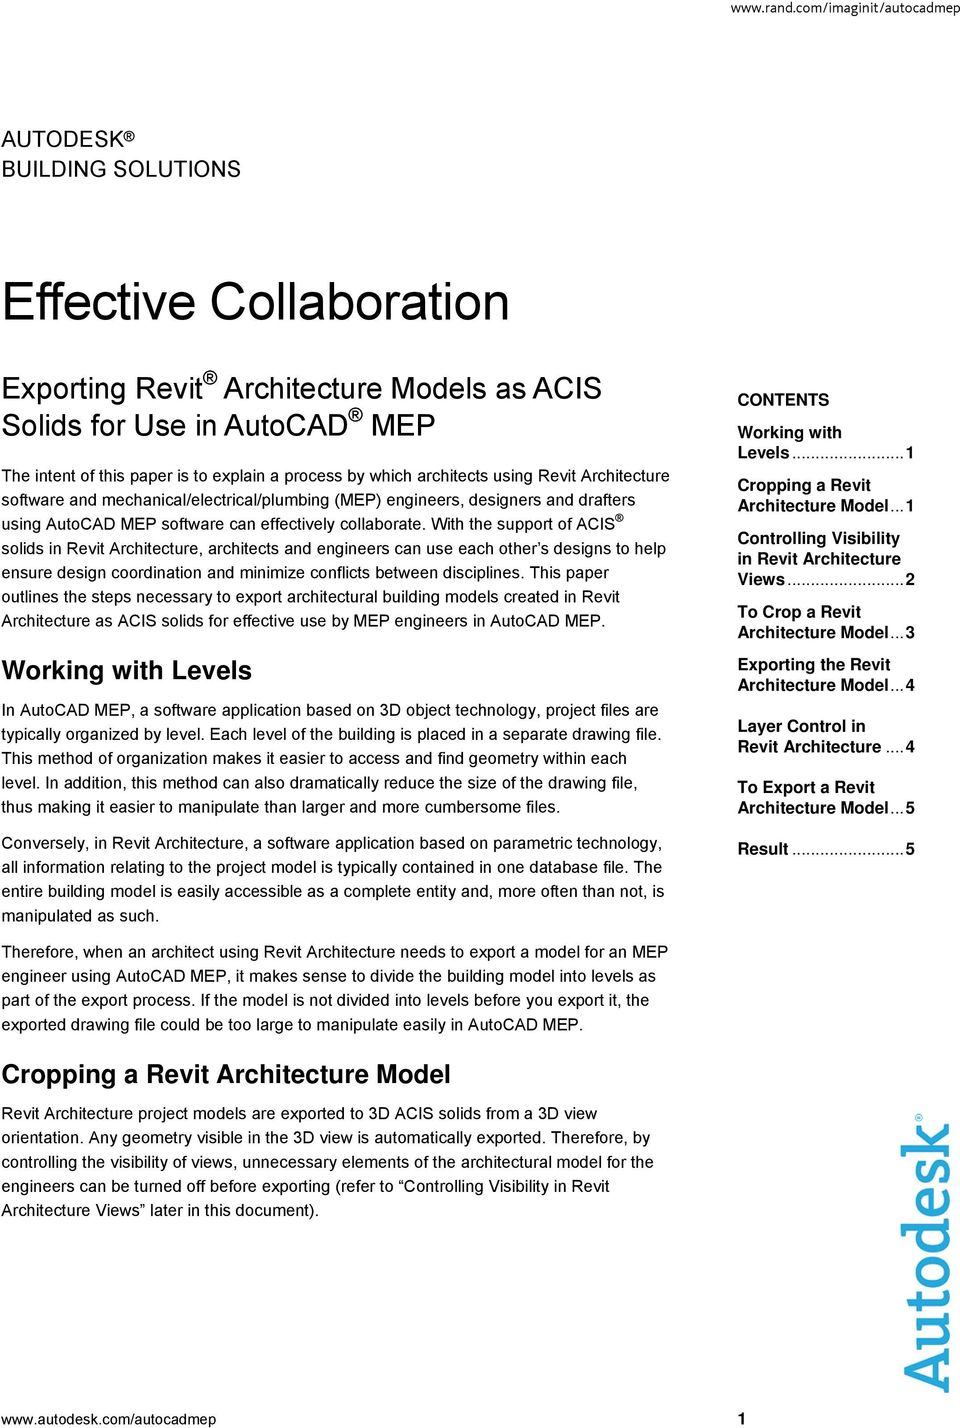 With the support of ACIS solids in Revit Architecture, architects and engineers can use each other s designs to help ensure design coordination and minimize conflicts between disciplines.